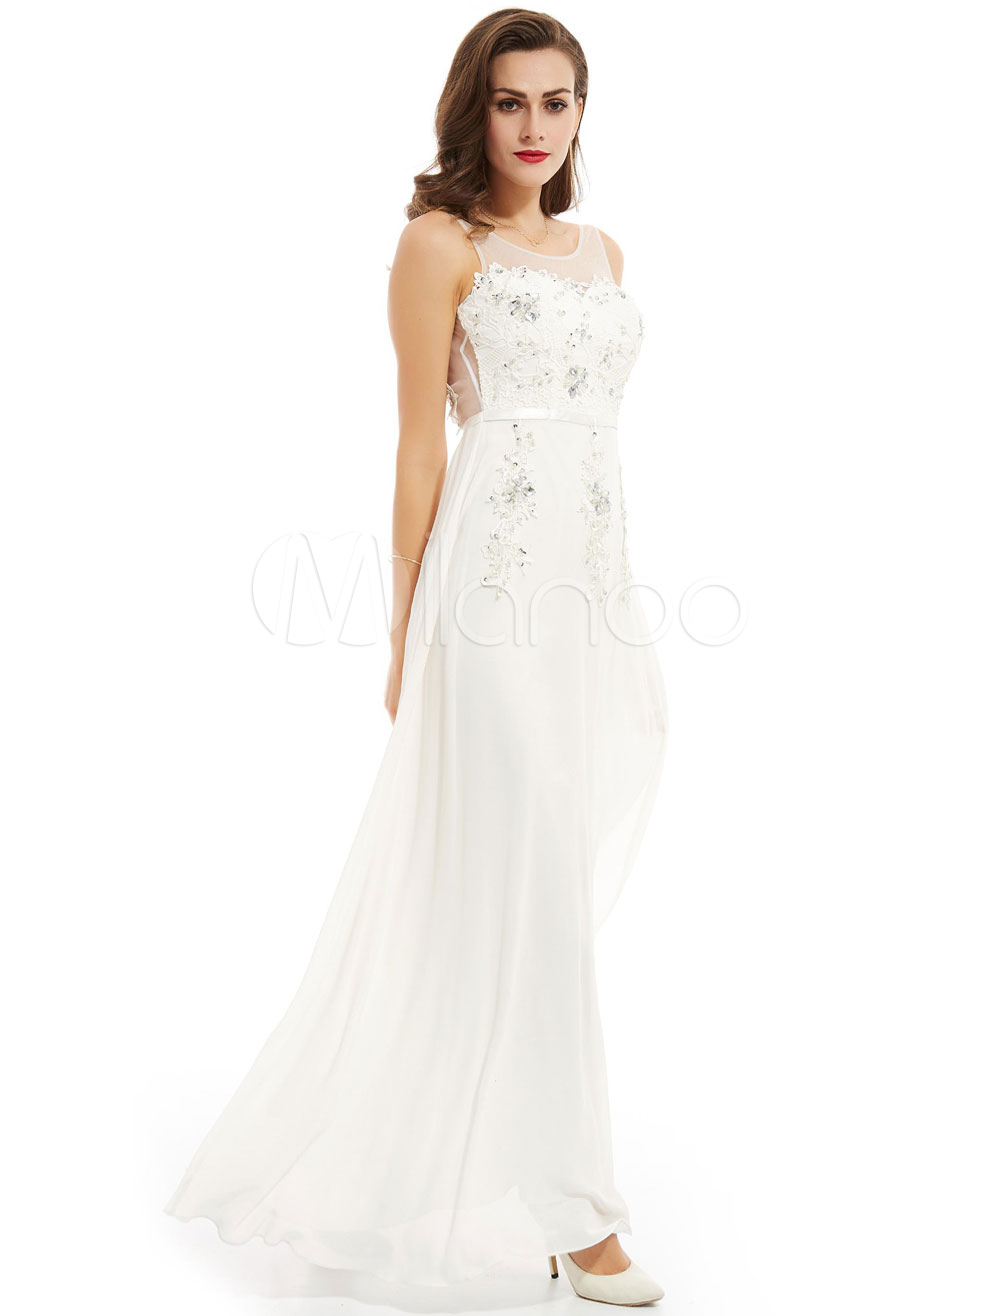 Buy Prom Dresses White Long Chiffon Lace Beading Floor Length Formal Party Dress for $79.19 in Milanoo store